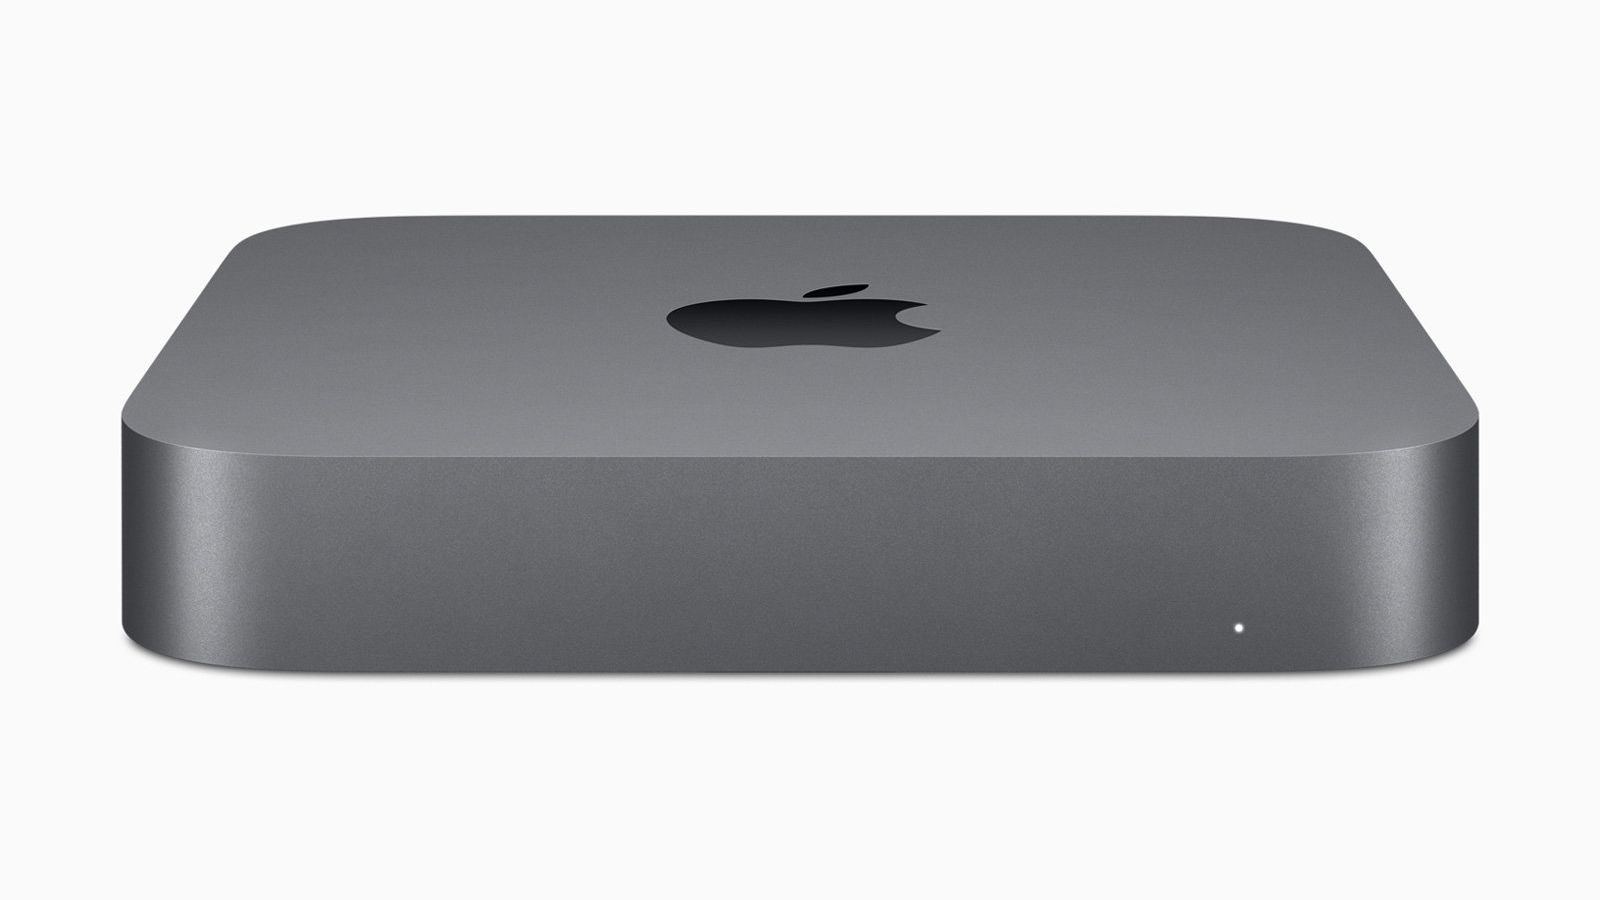 Her er nye Mac mini